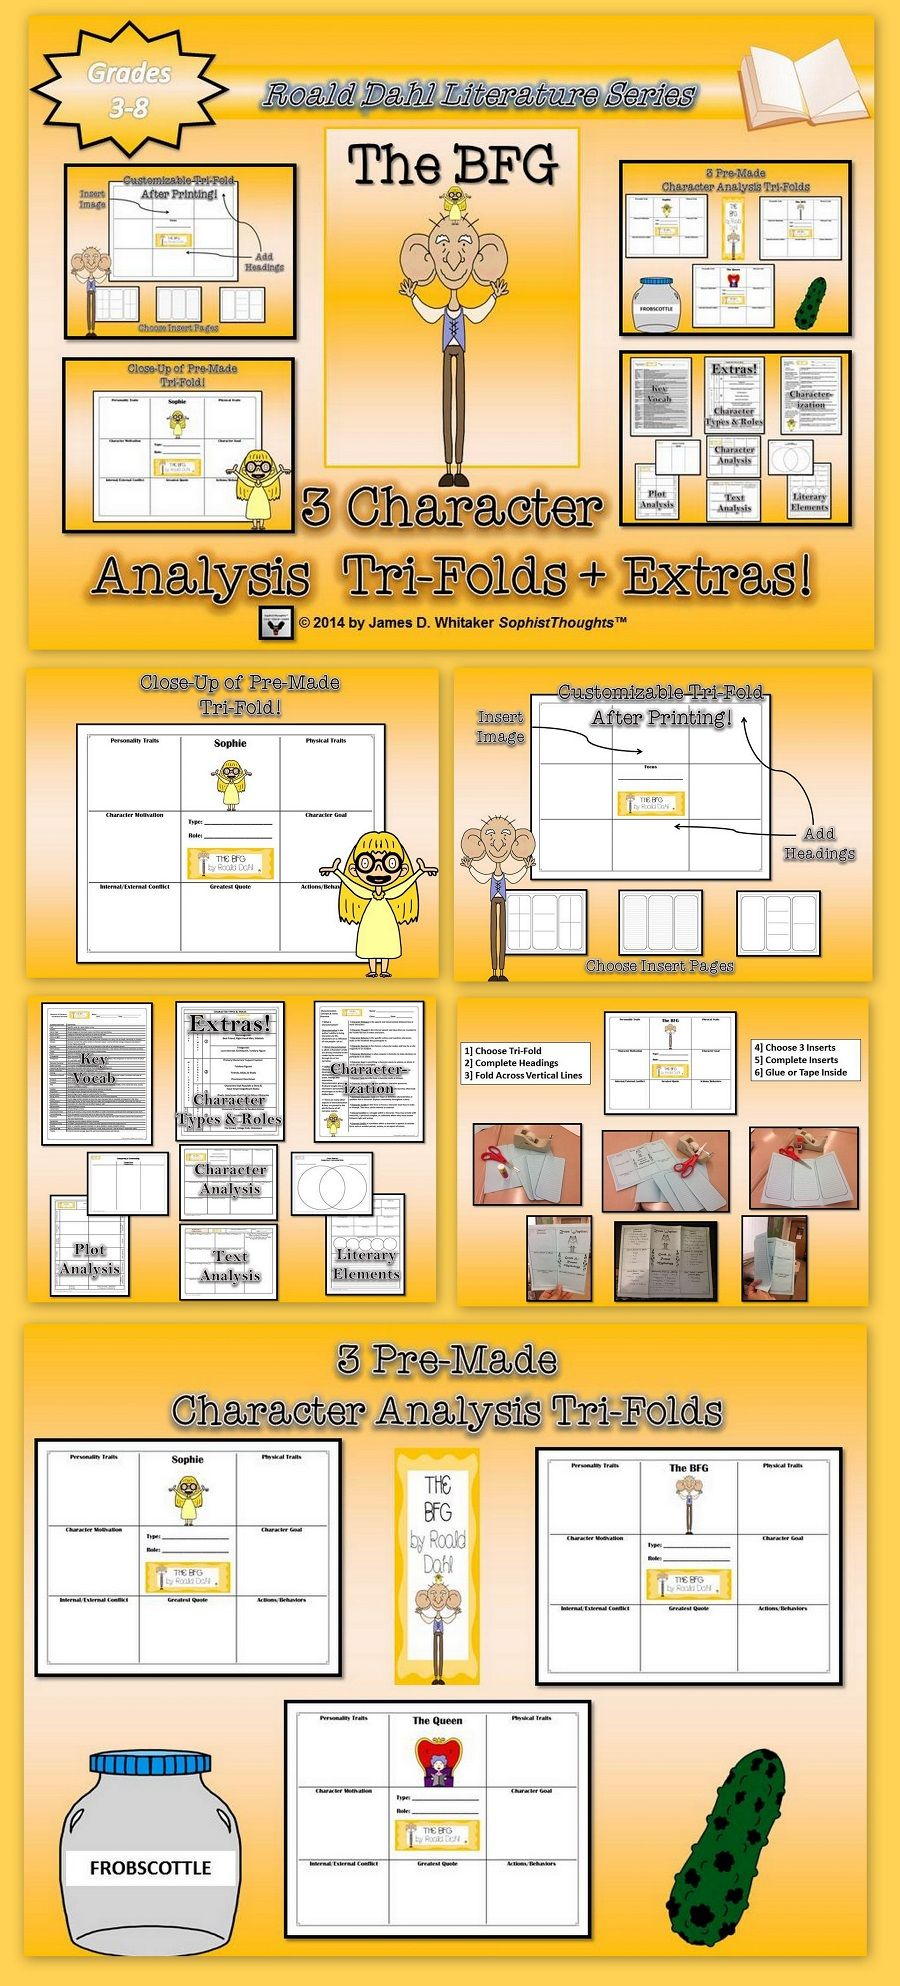 roald dahl boy book report Author - roald dahl 0001 one of a series of literary quizzes consisting of 10 questions with multiple choice answers great fun for book lovers.